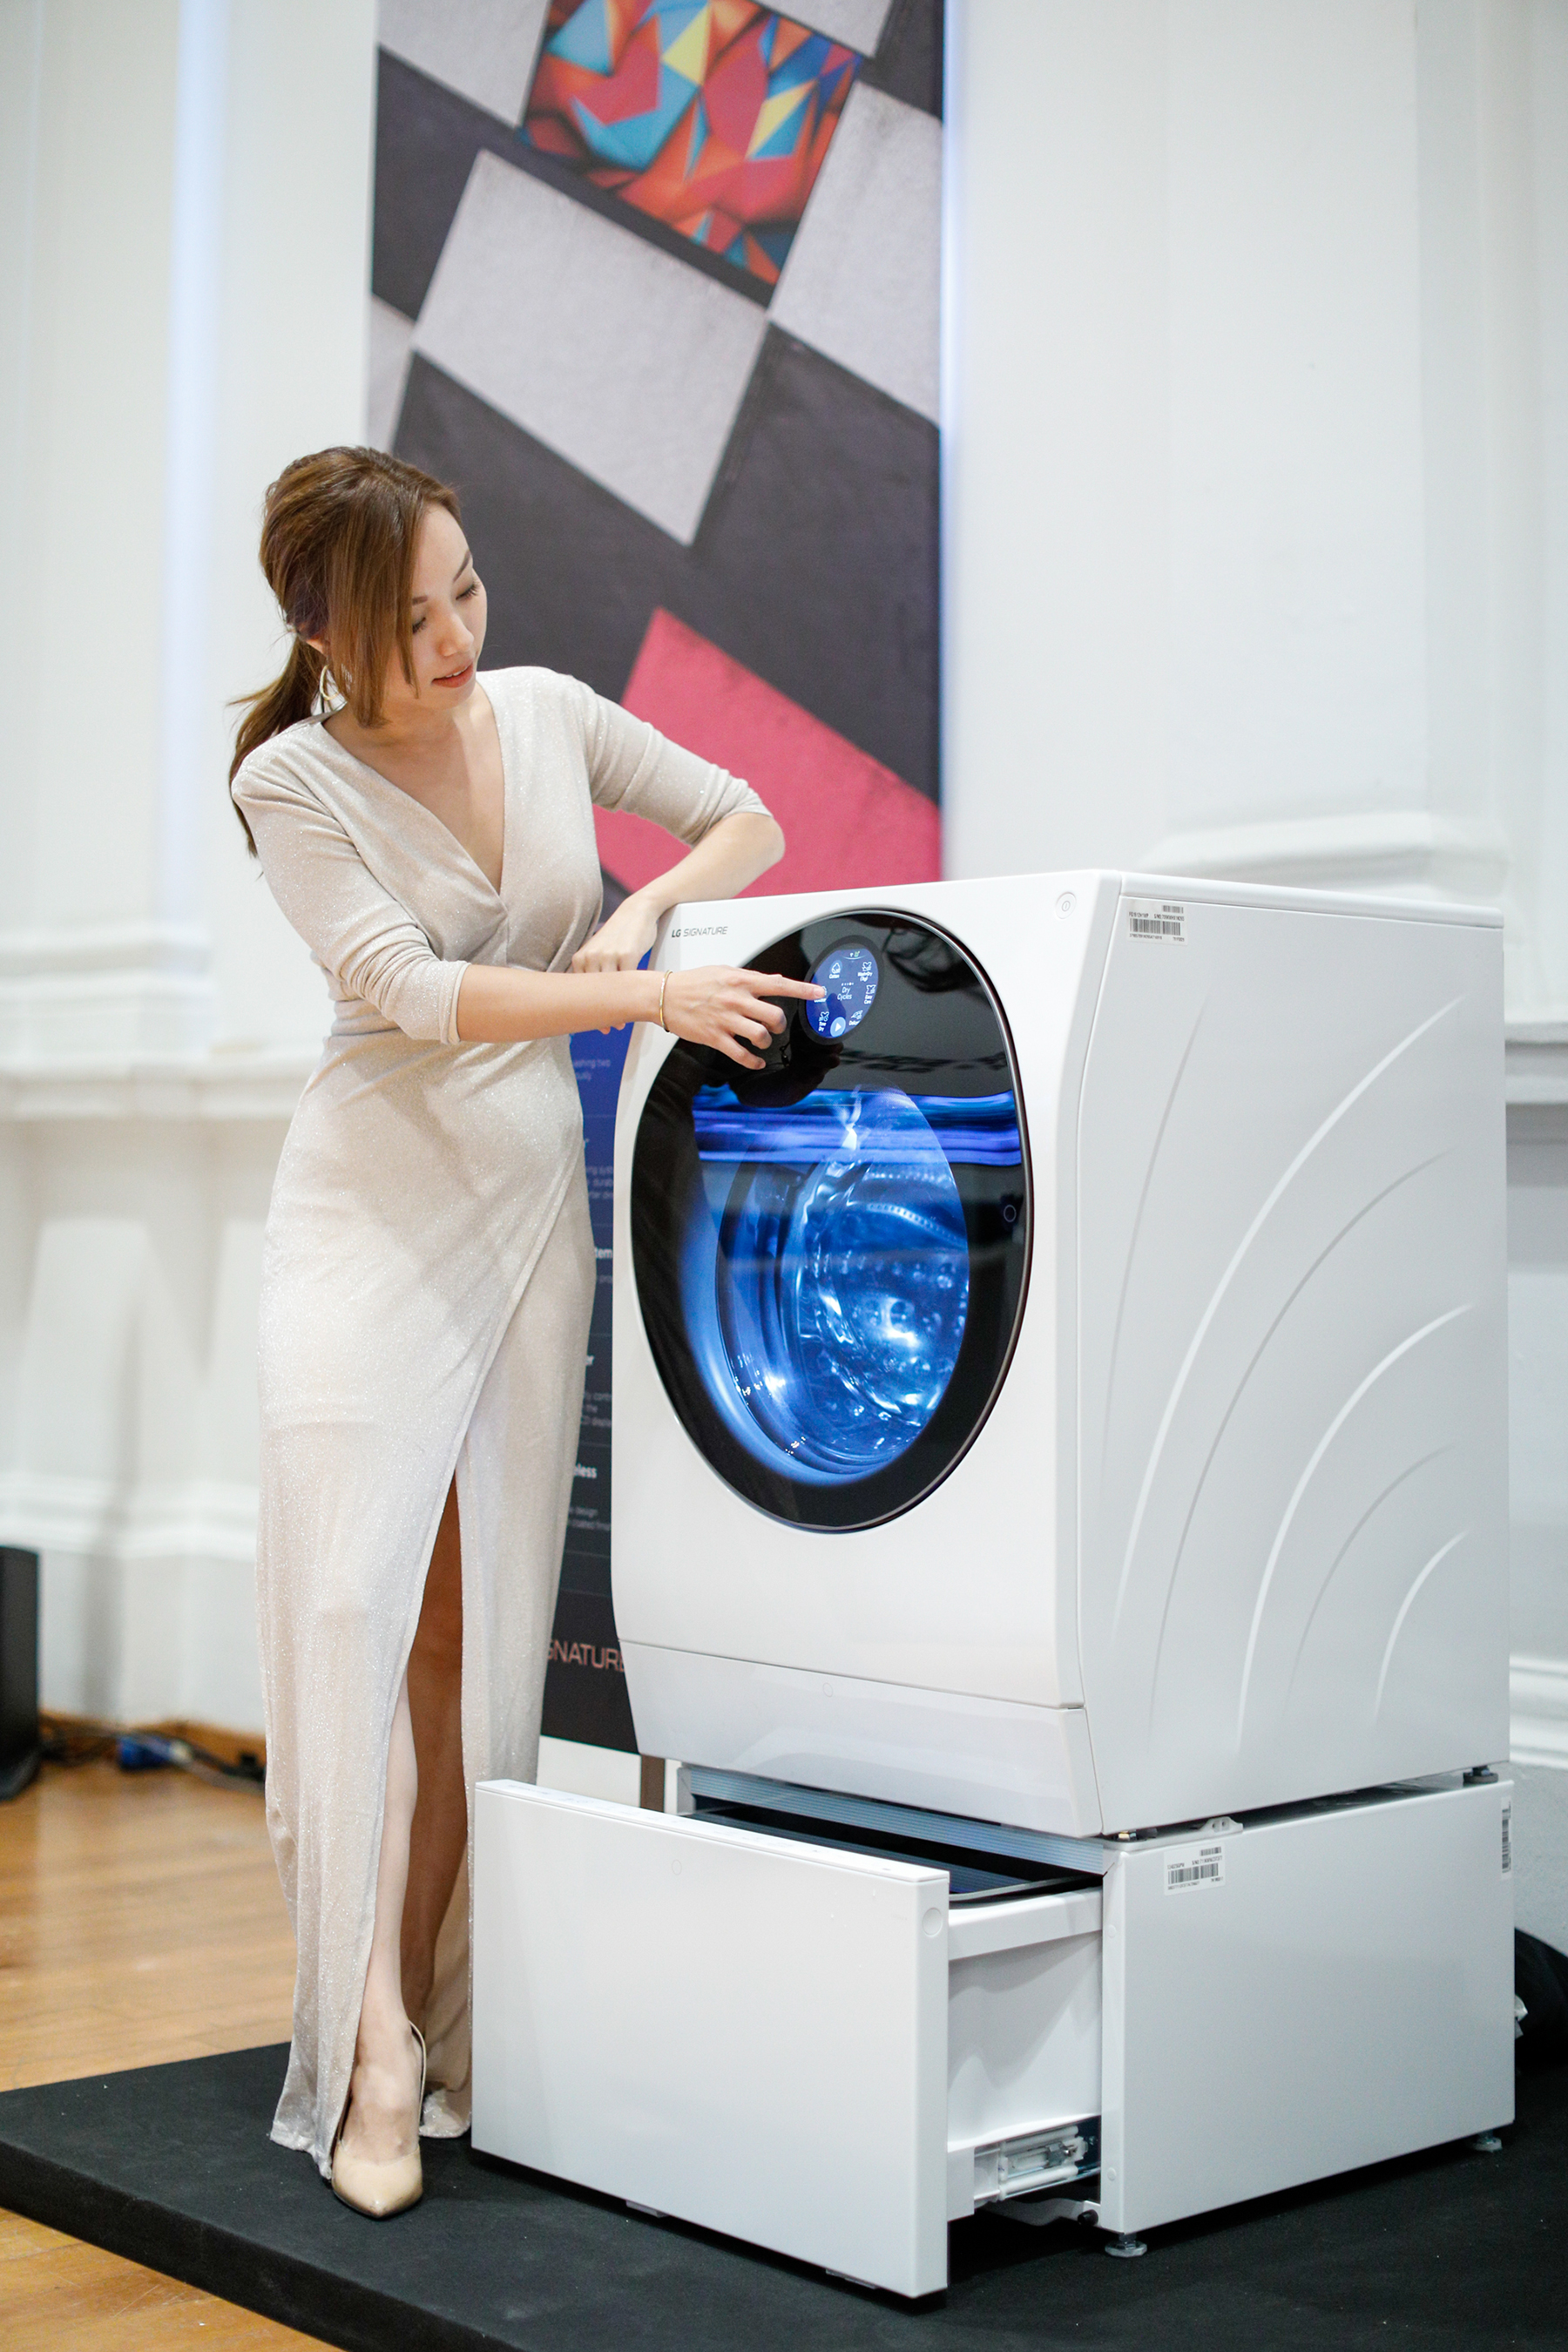 """It is important that a washing machine is easy to use, smart and cares for a variety of fabrics"" - Beatrice Tan"